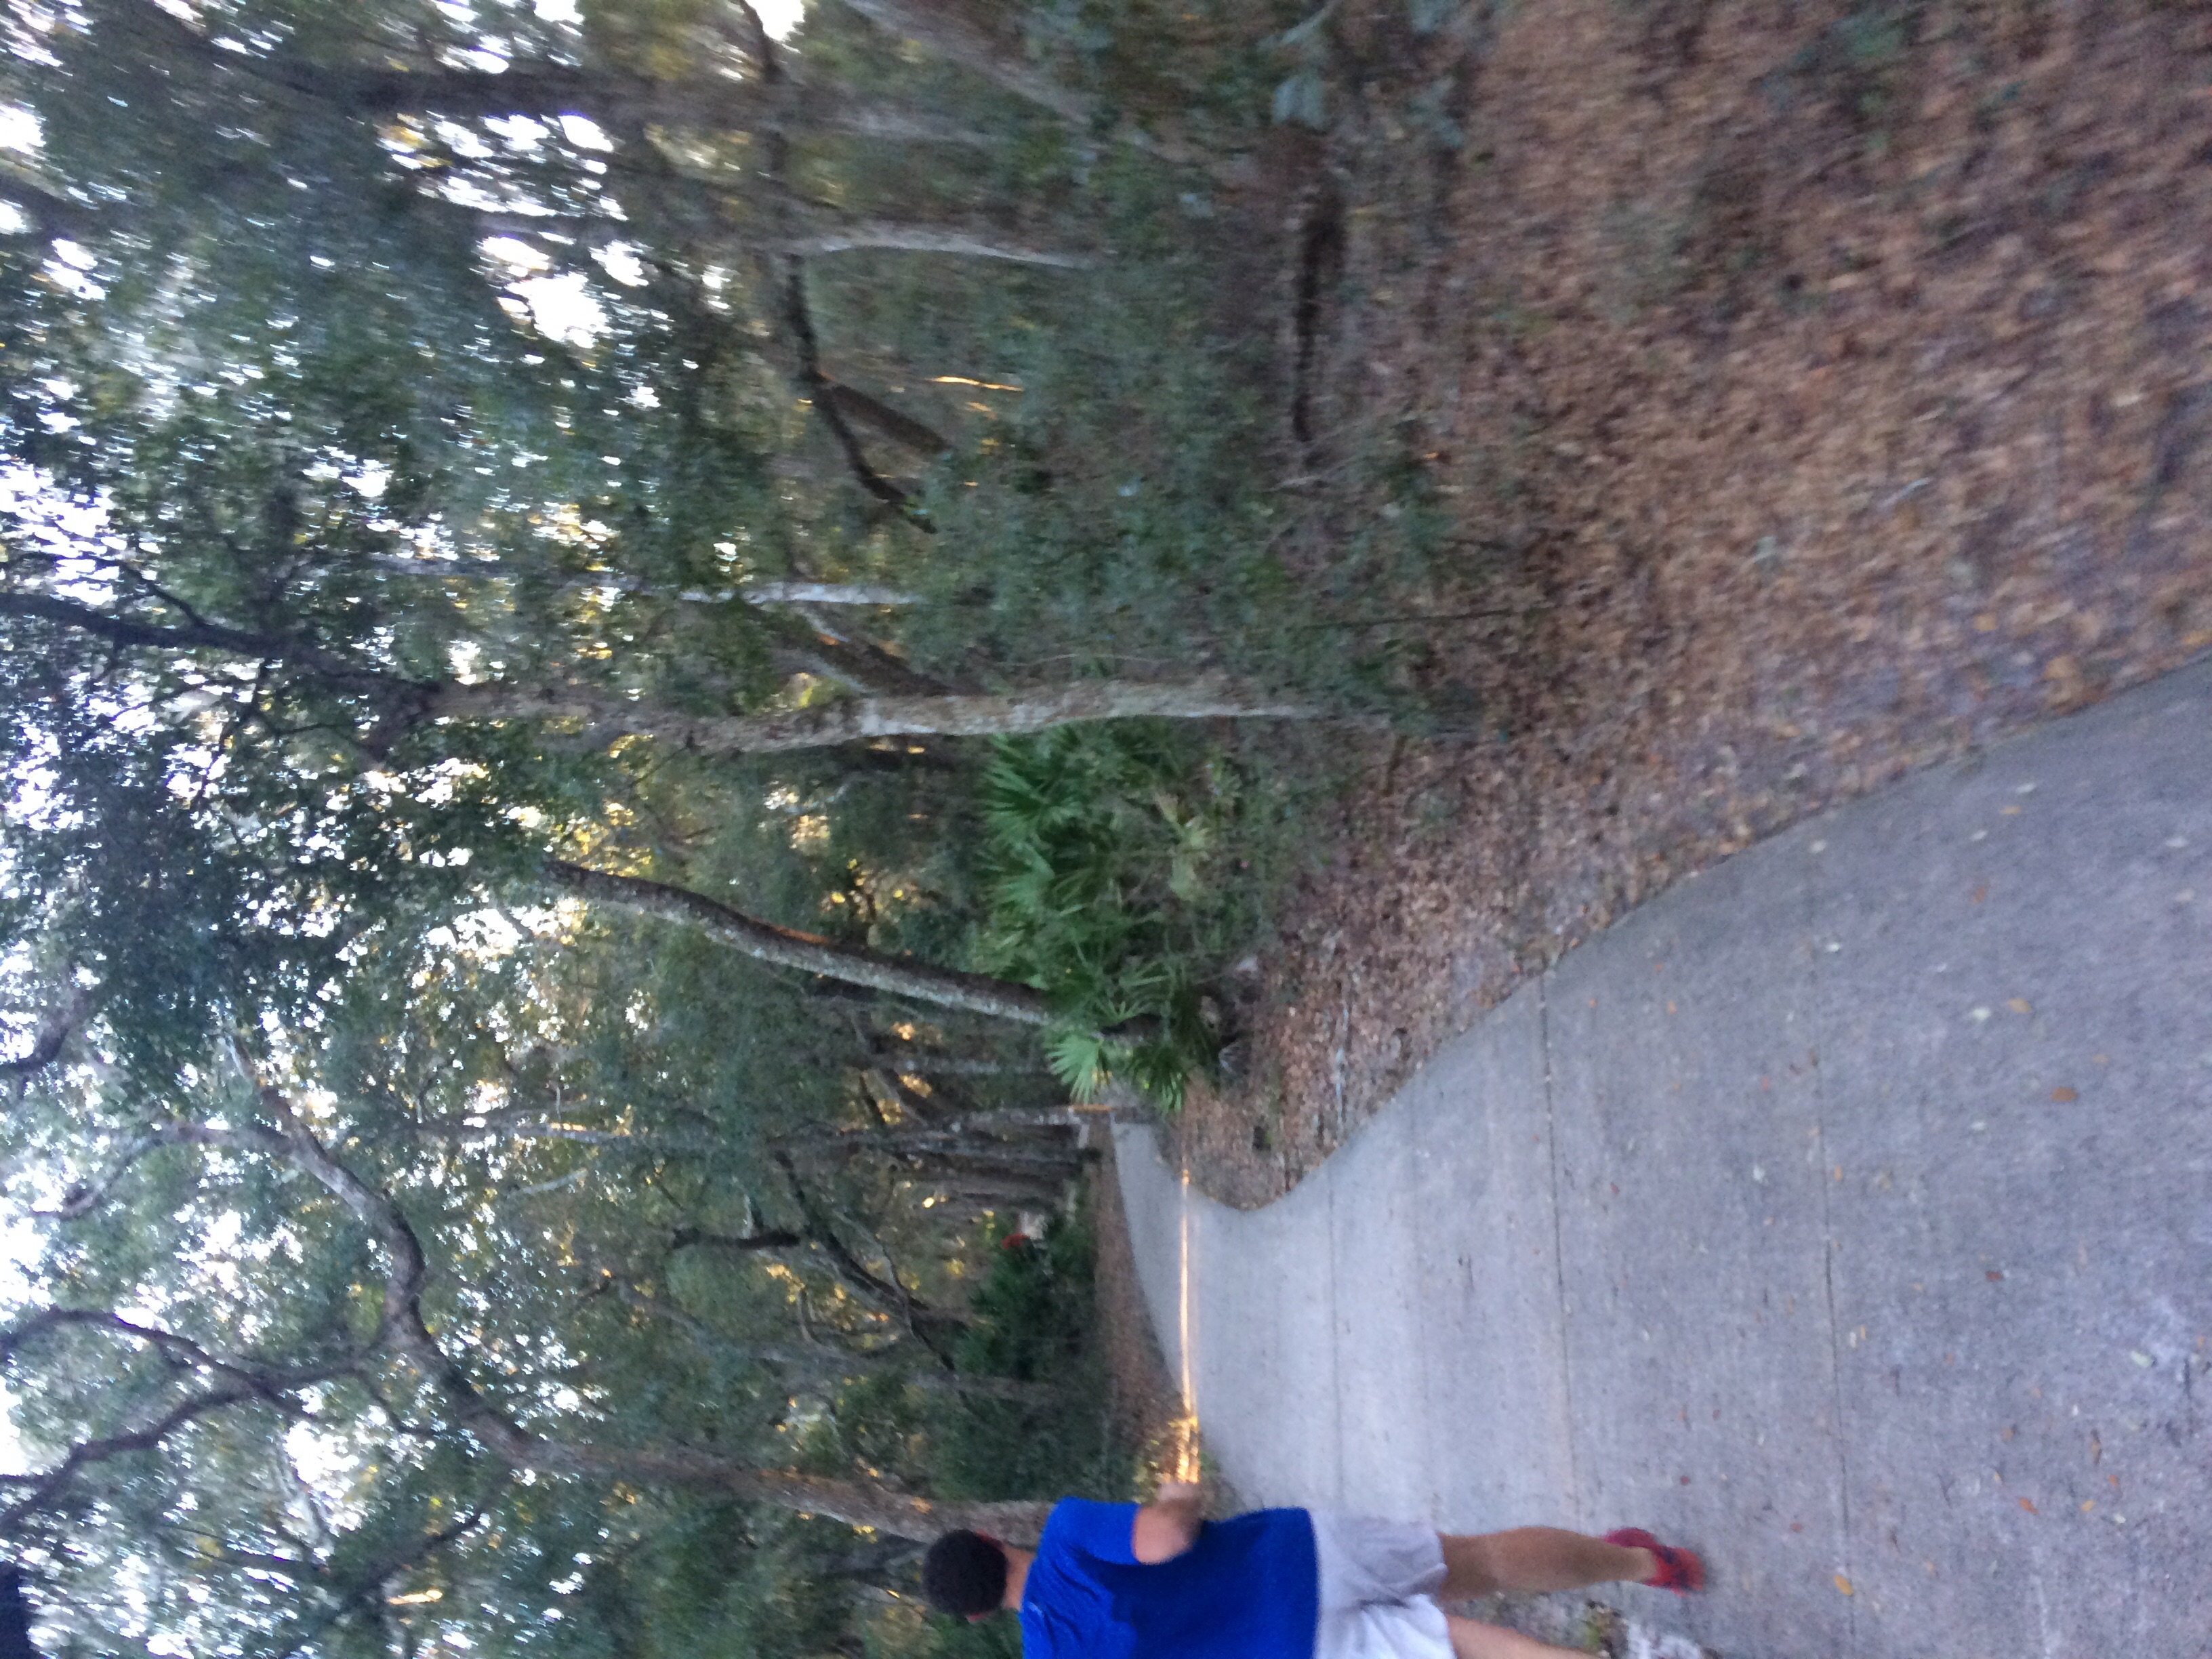 We've enjoyed running on the beach, but the jogging trails are beautiful here, too.